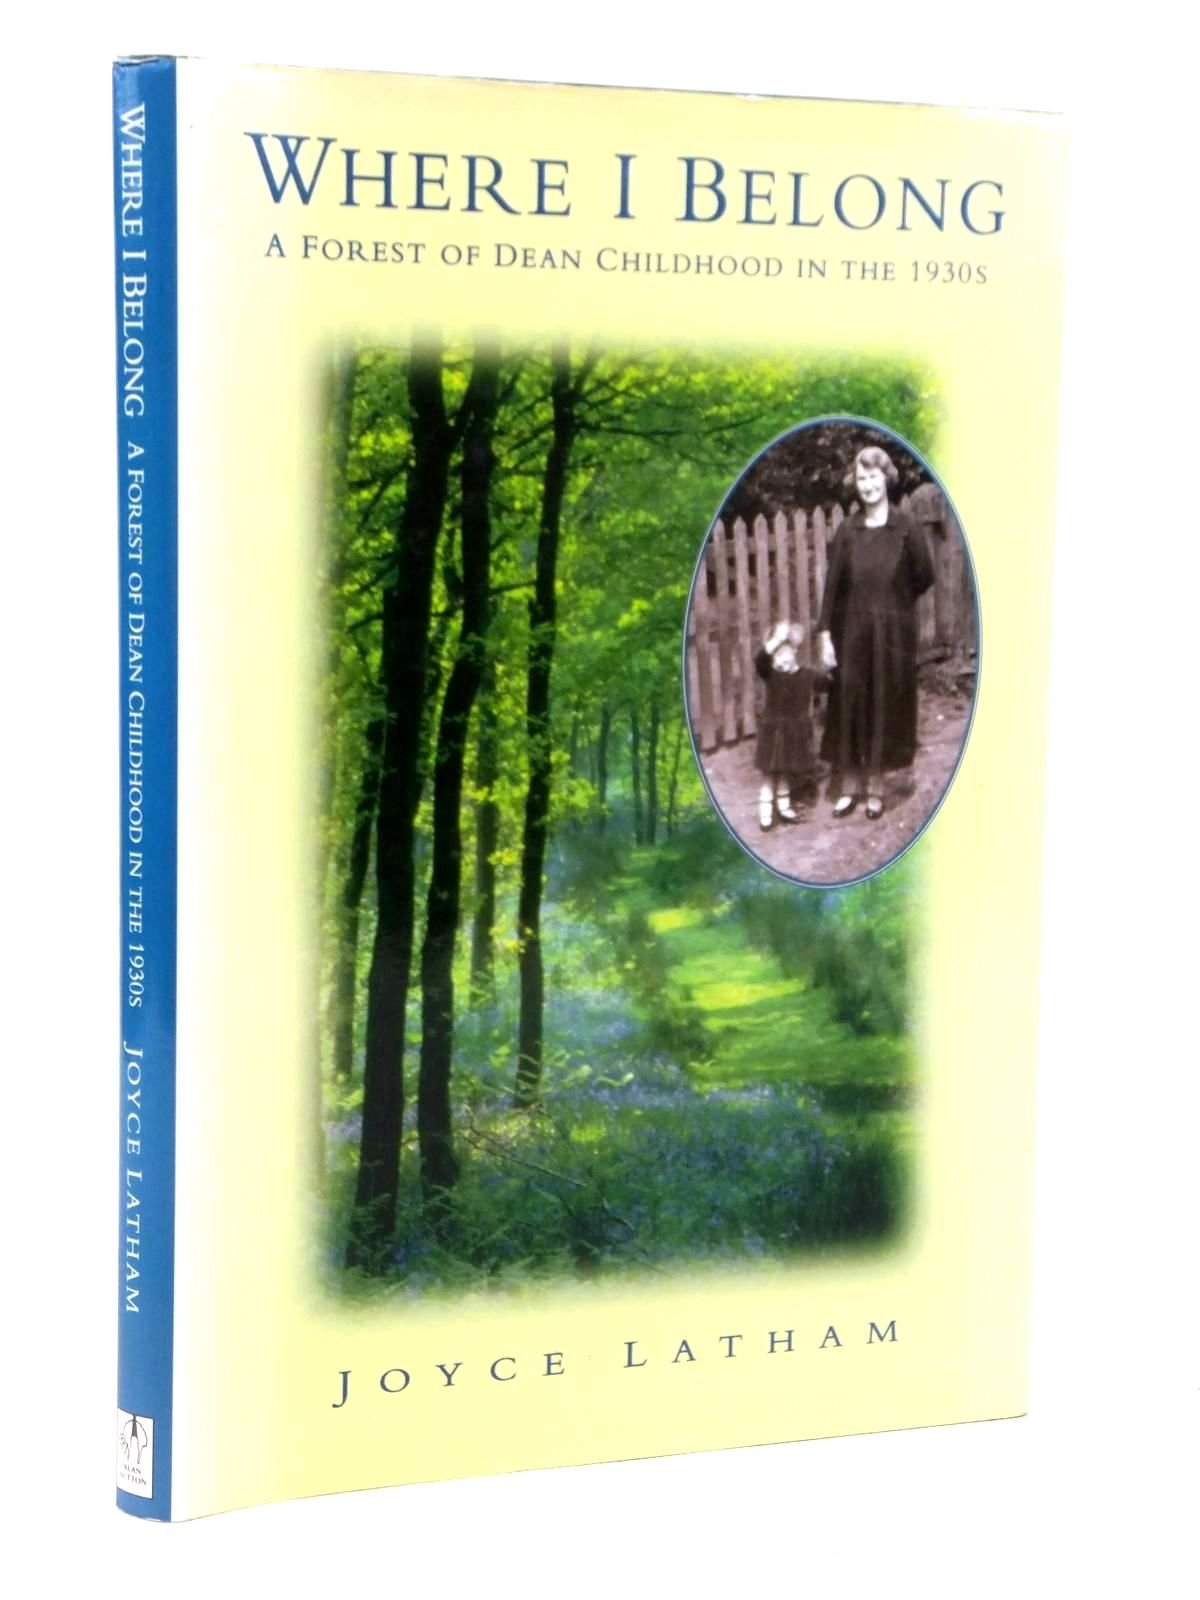 Where I Belong: A Forest of Dean Childhood in the 1930s